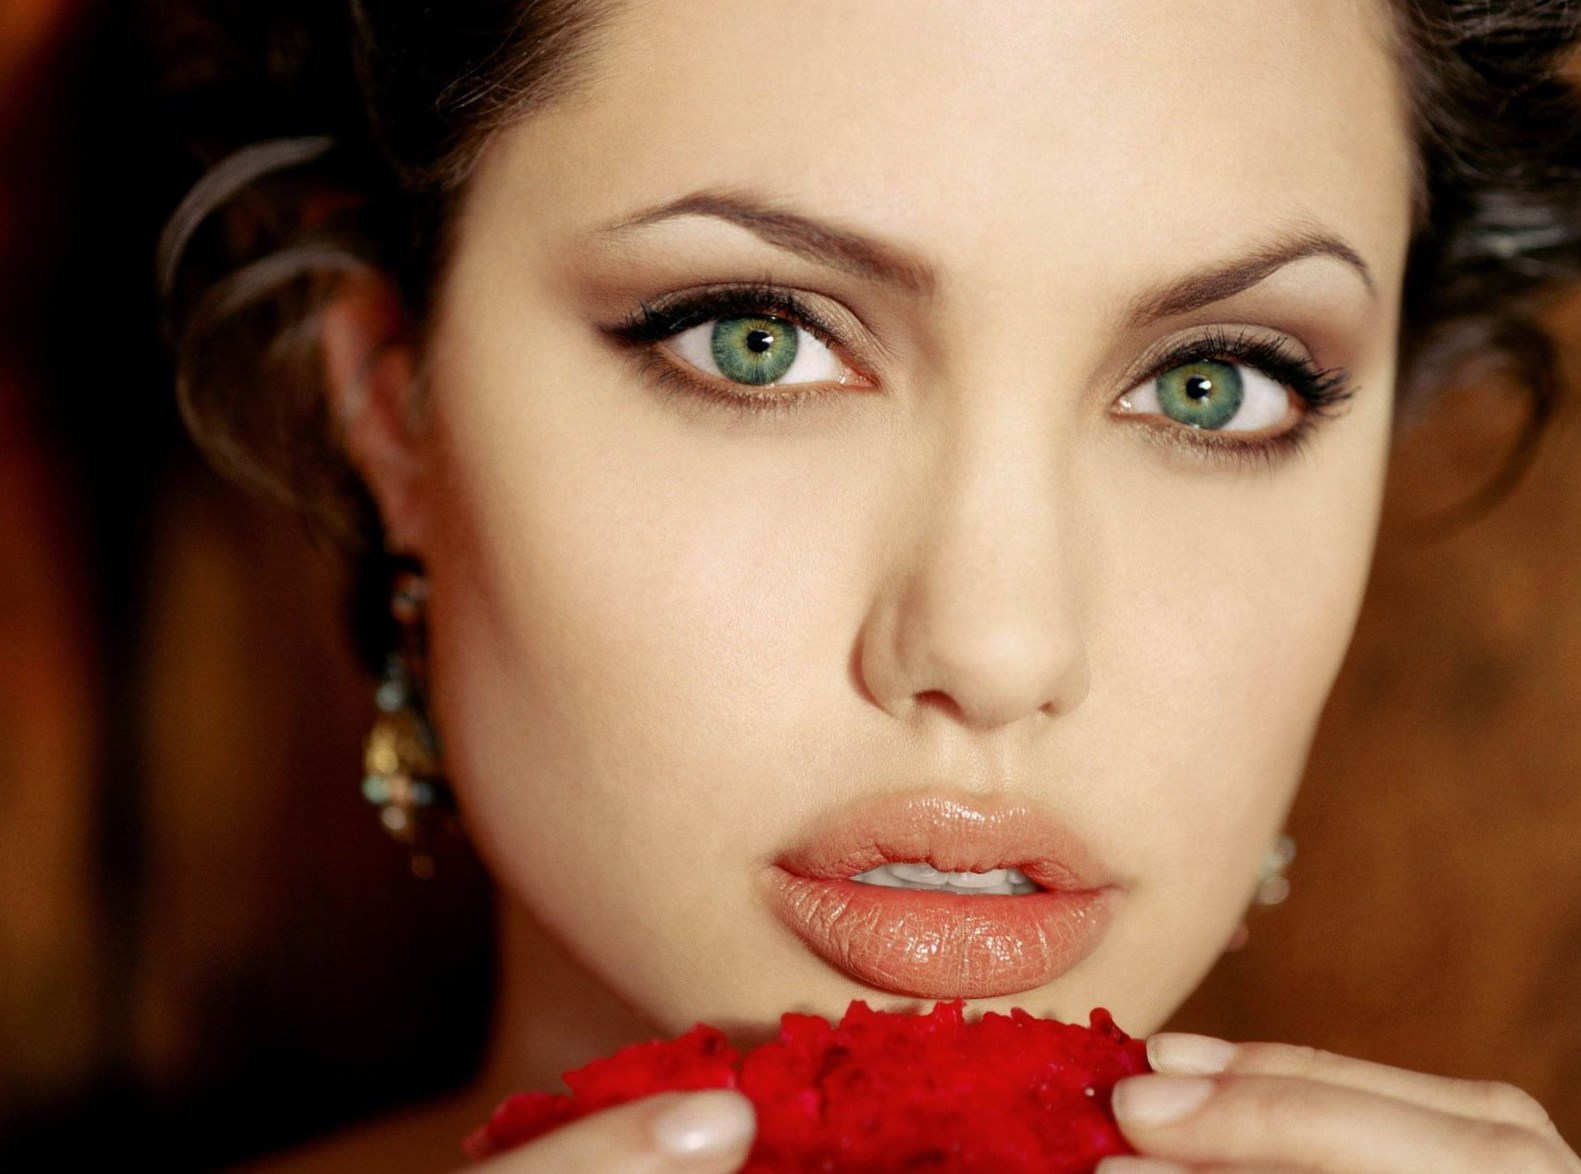 celebrity angelina jolie weight height and age